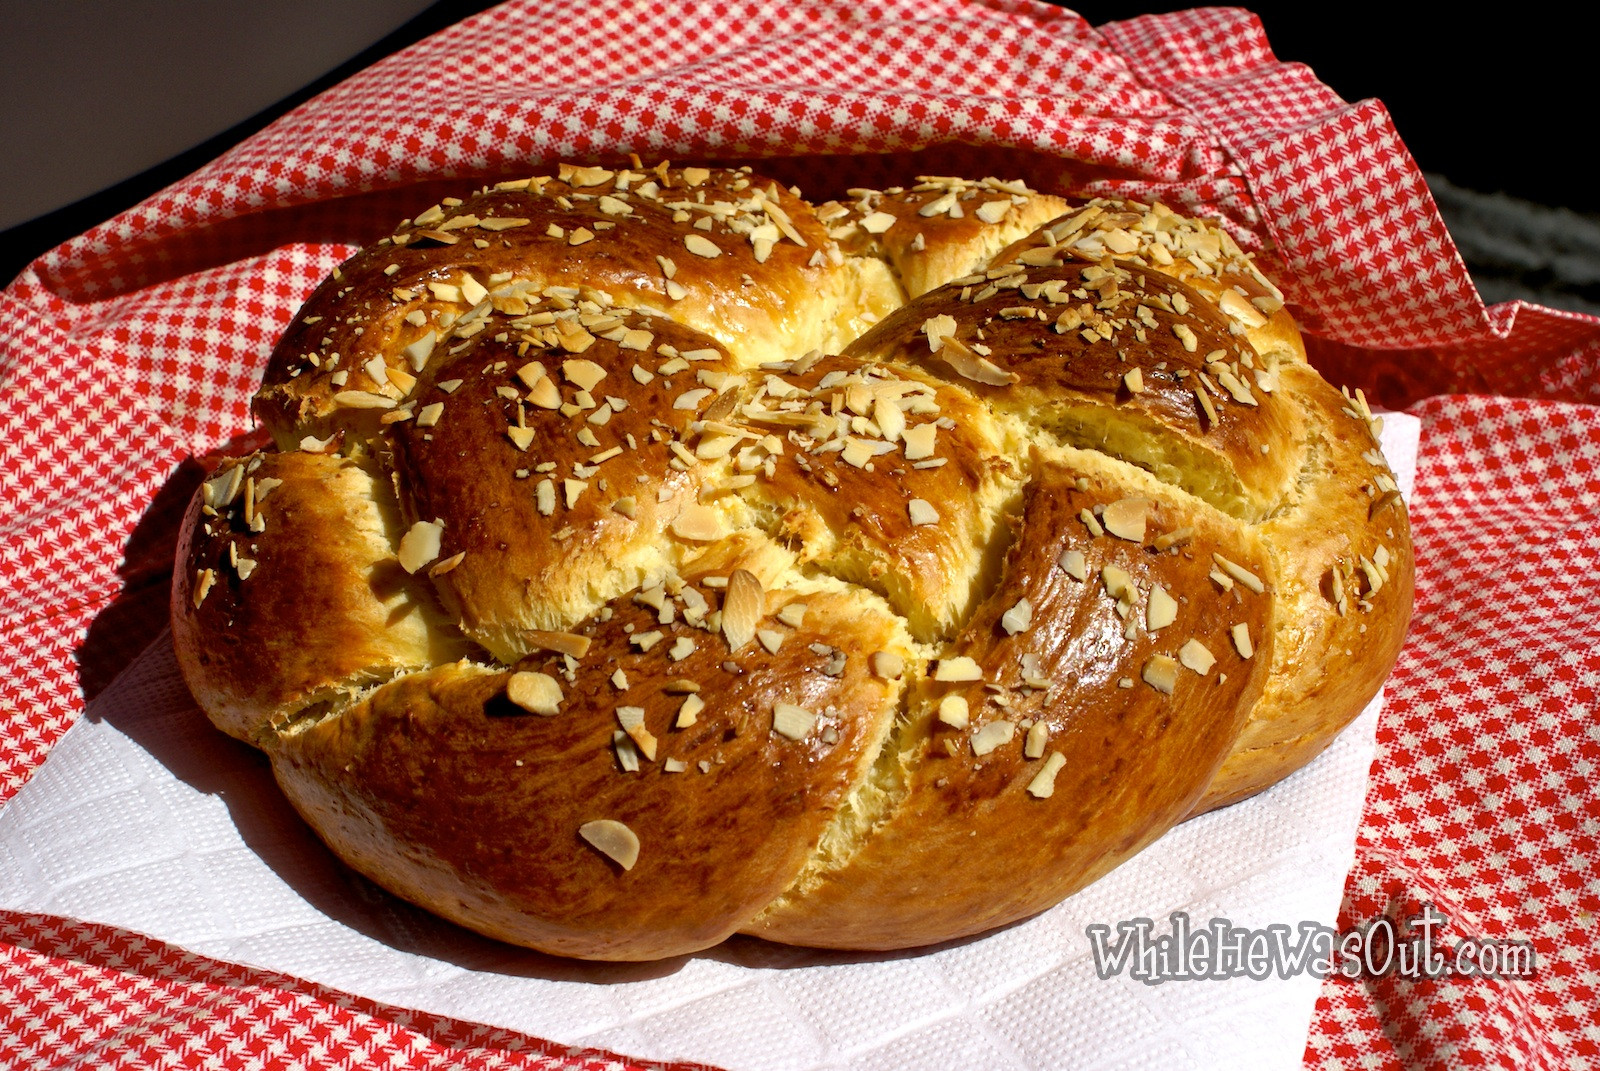 Braided Easter Bread  Traditional Easter Braided Sweet Bread – 2